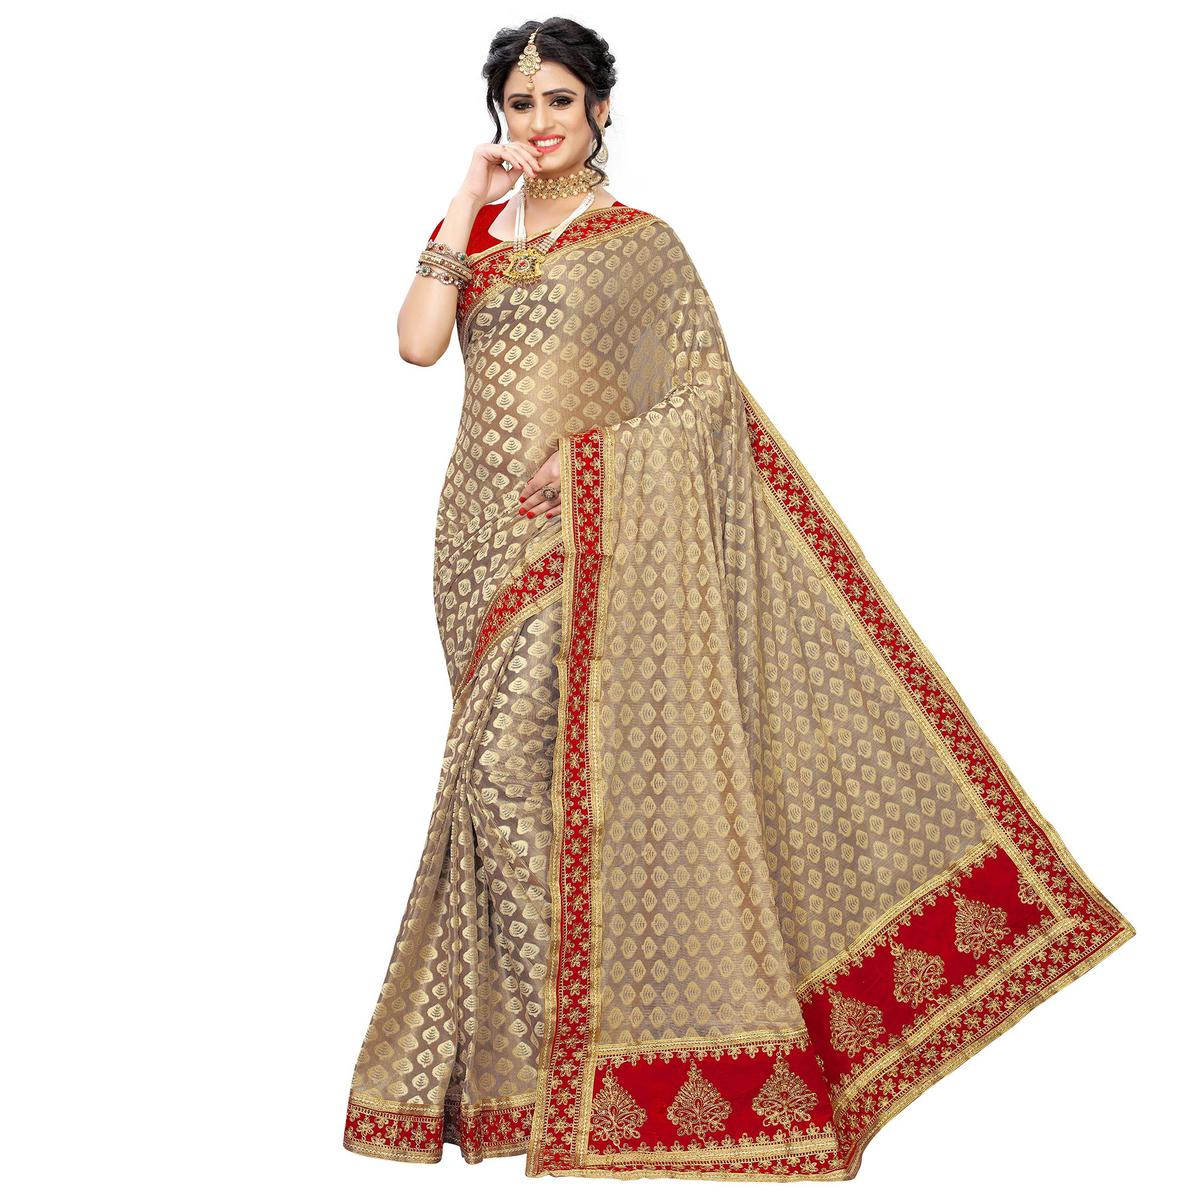 Jazzy Brown-Red Colored Partywear Embroidered Jacquard Saree